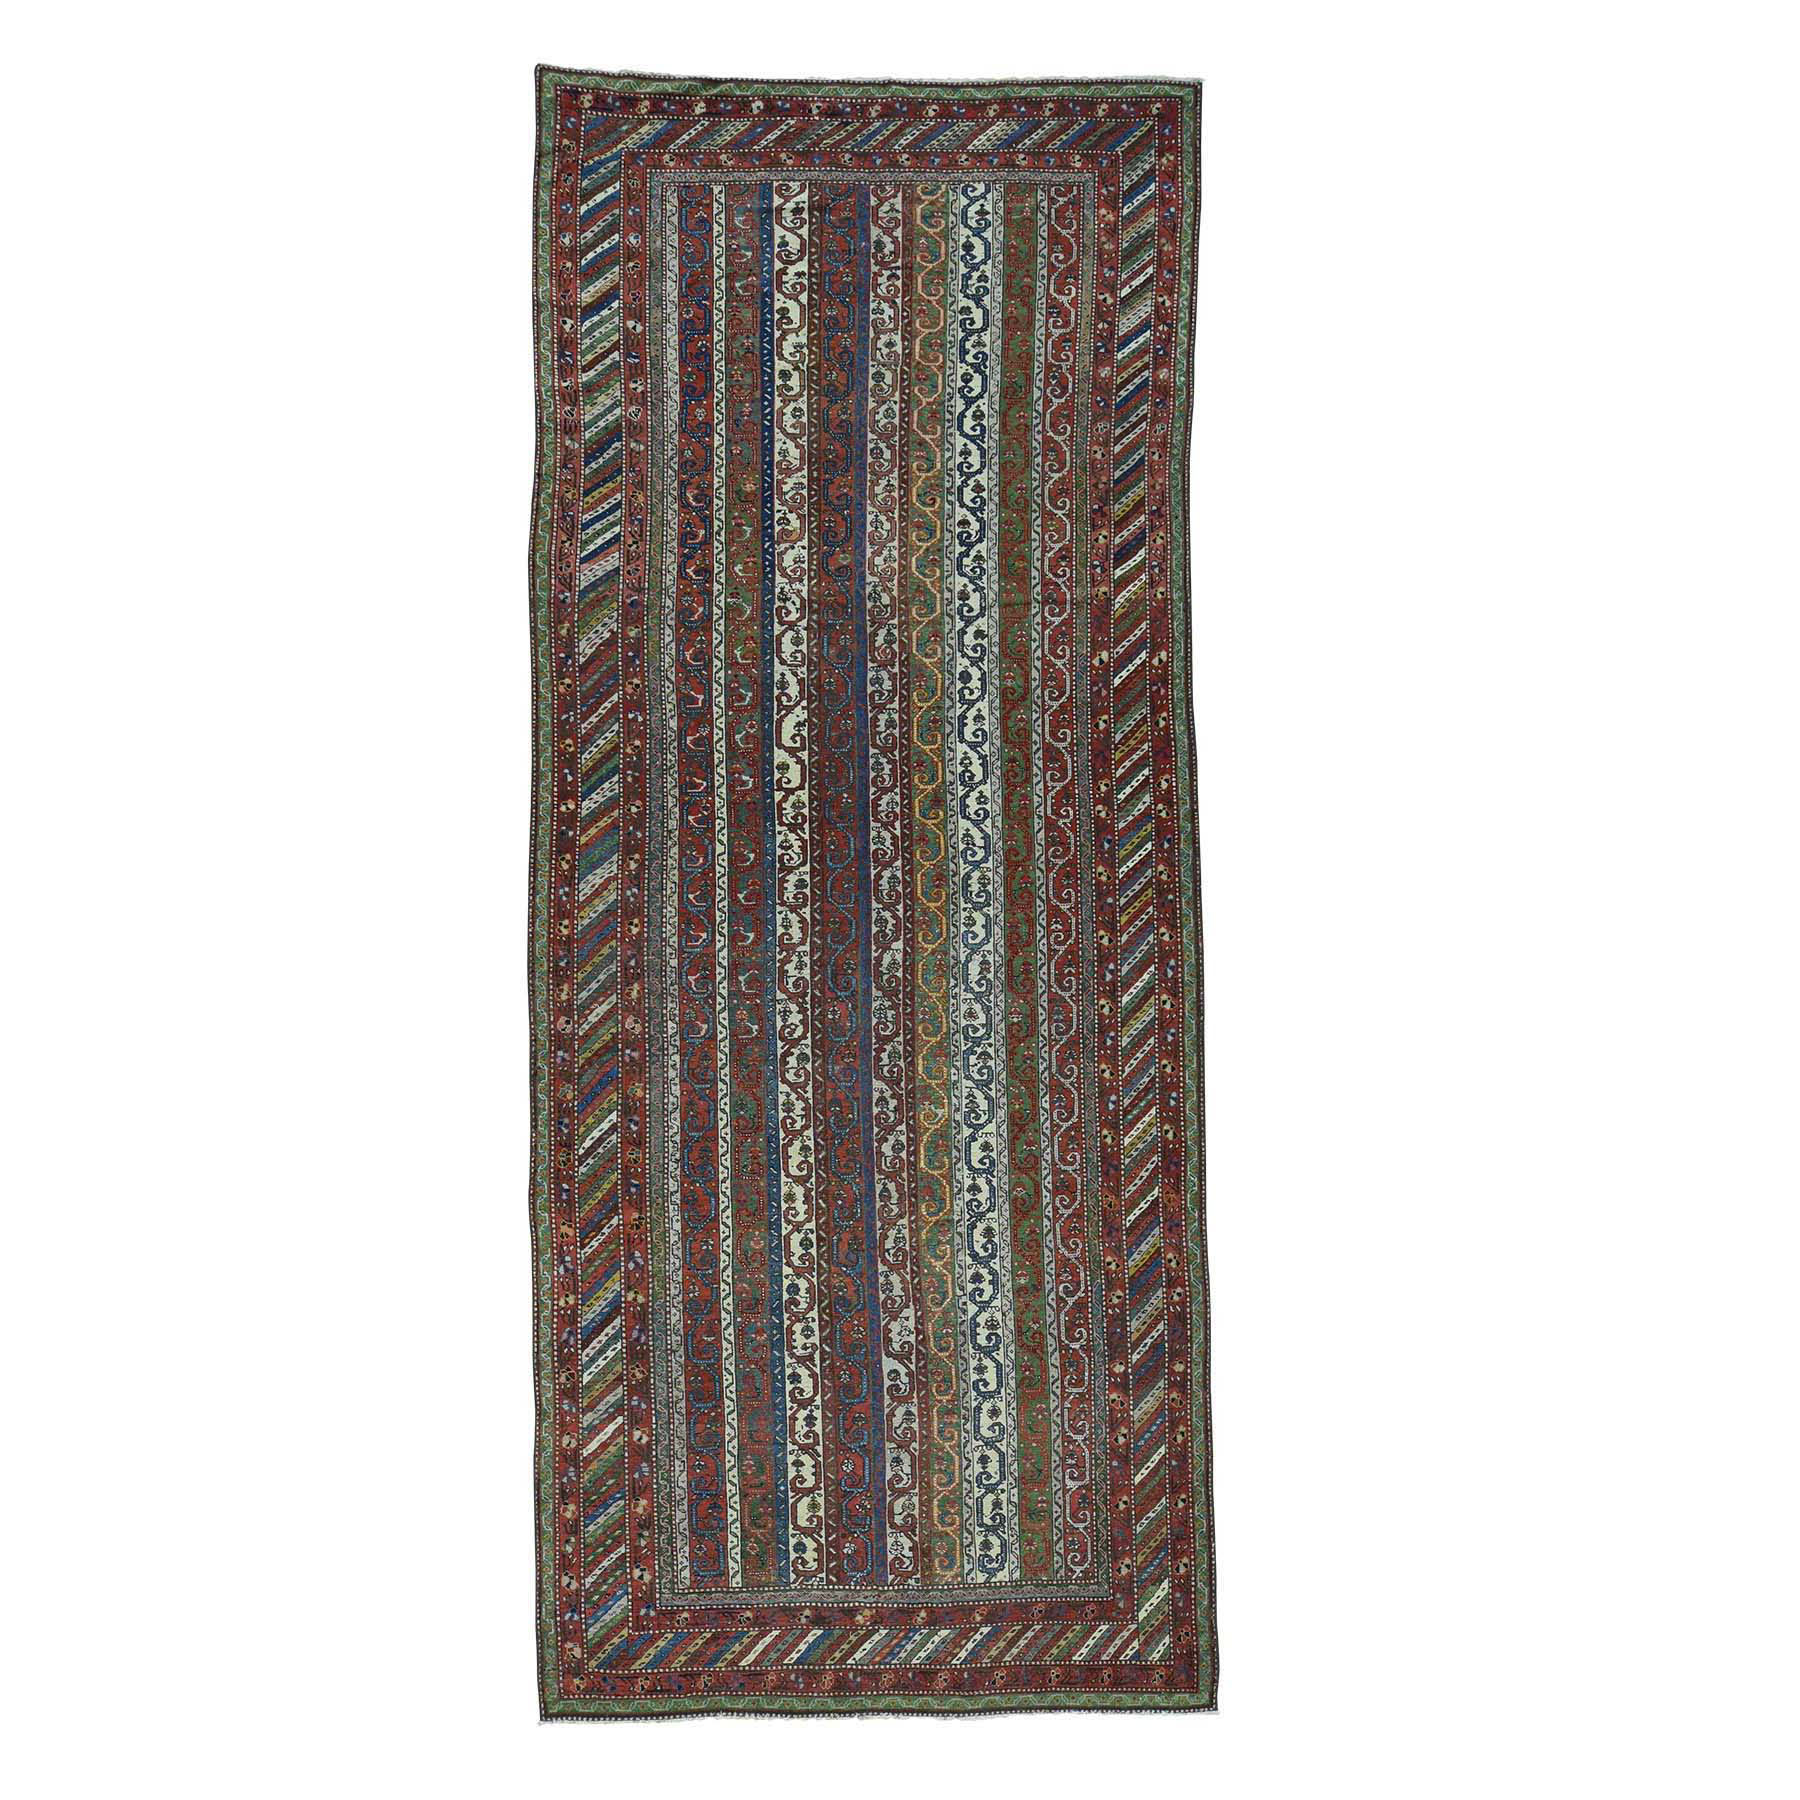 Antique Collection Hand Knotted Multicolored Rug No: 168842